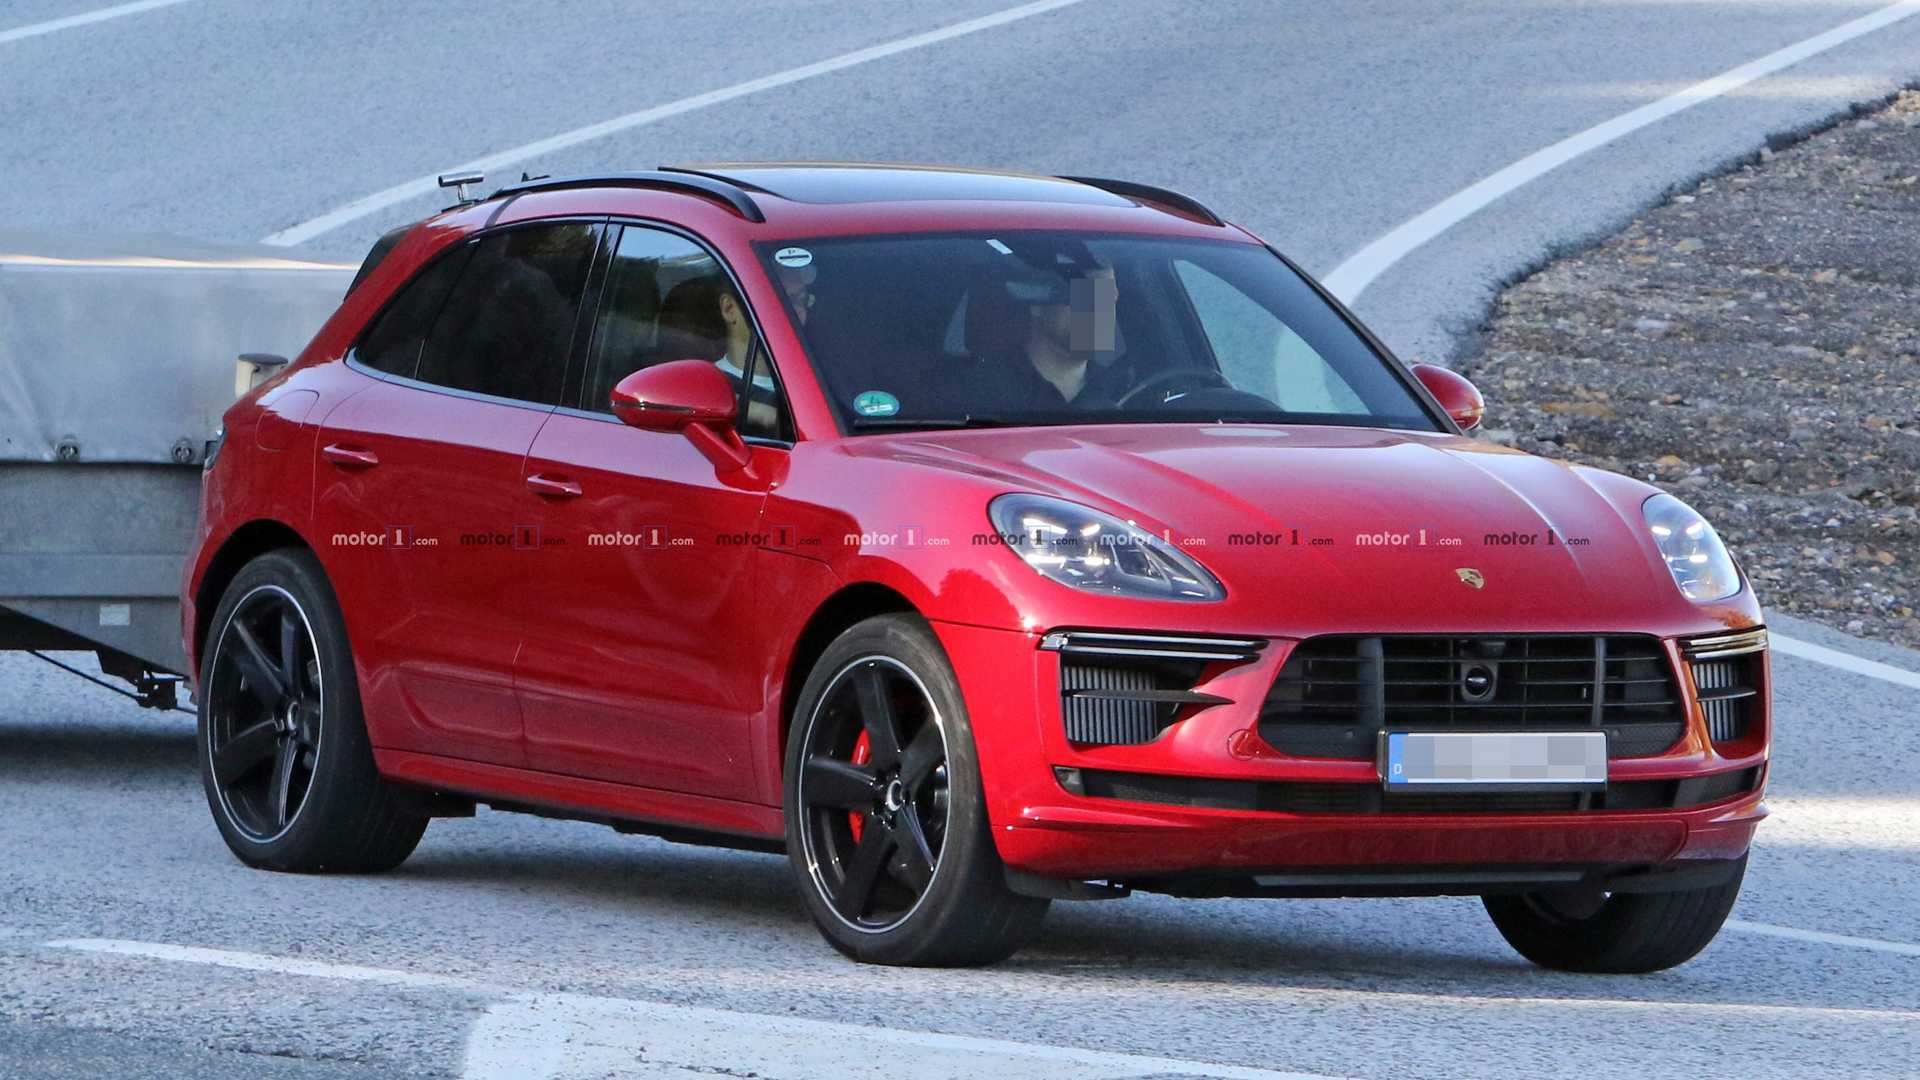 83 The Best 2019 Porsche Macan Gts Review And Release Date